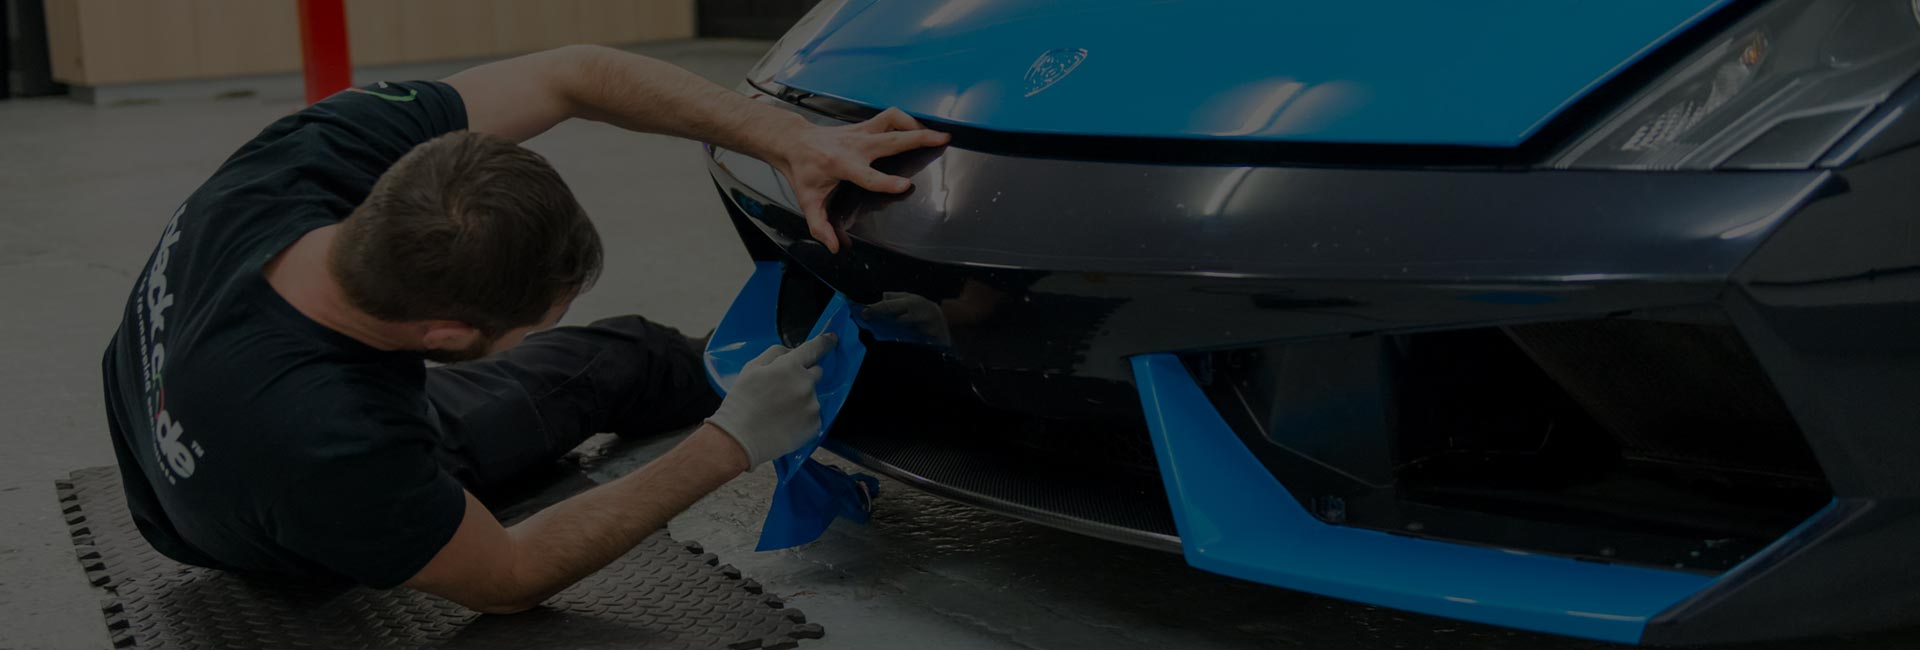 Lamborghini Gallardo Full Vinyl Wrap Colour change to Baby Blue - Installation Gallery